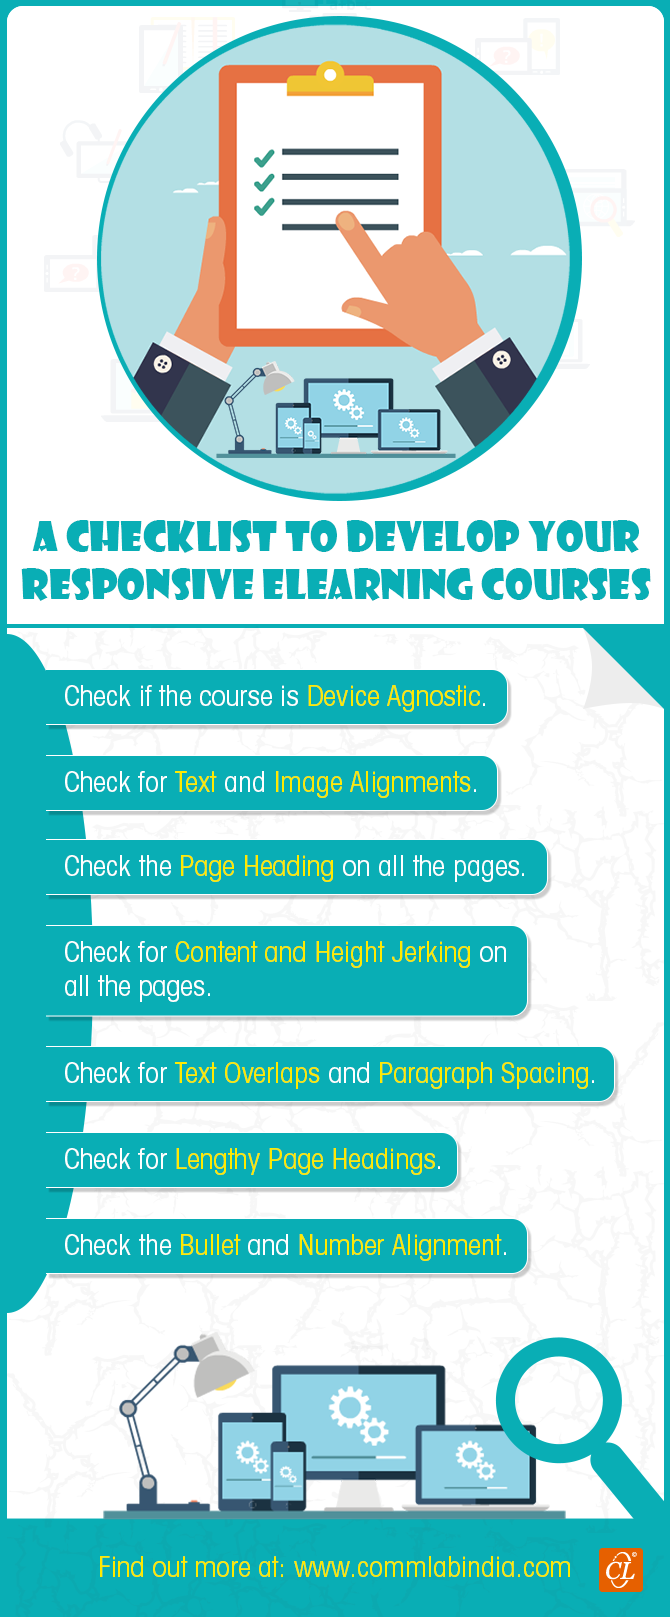 A Checklist to Develop Responsive eLearning Courses [Infographic]